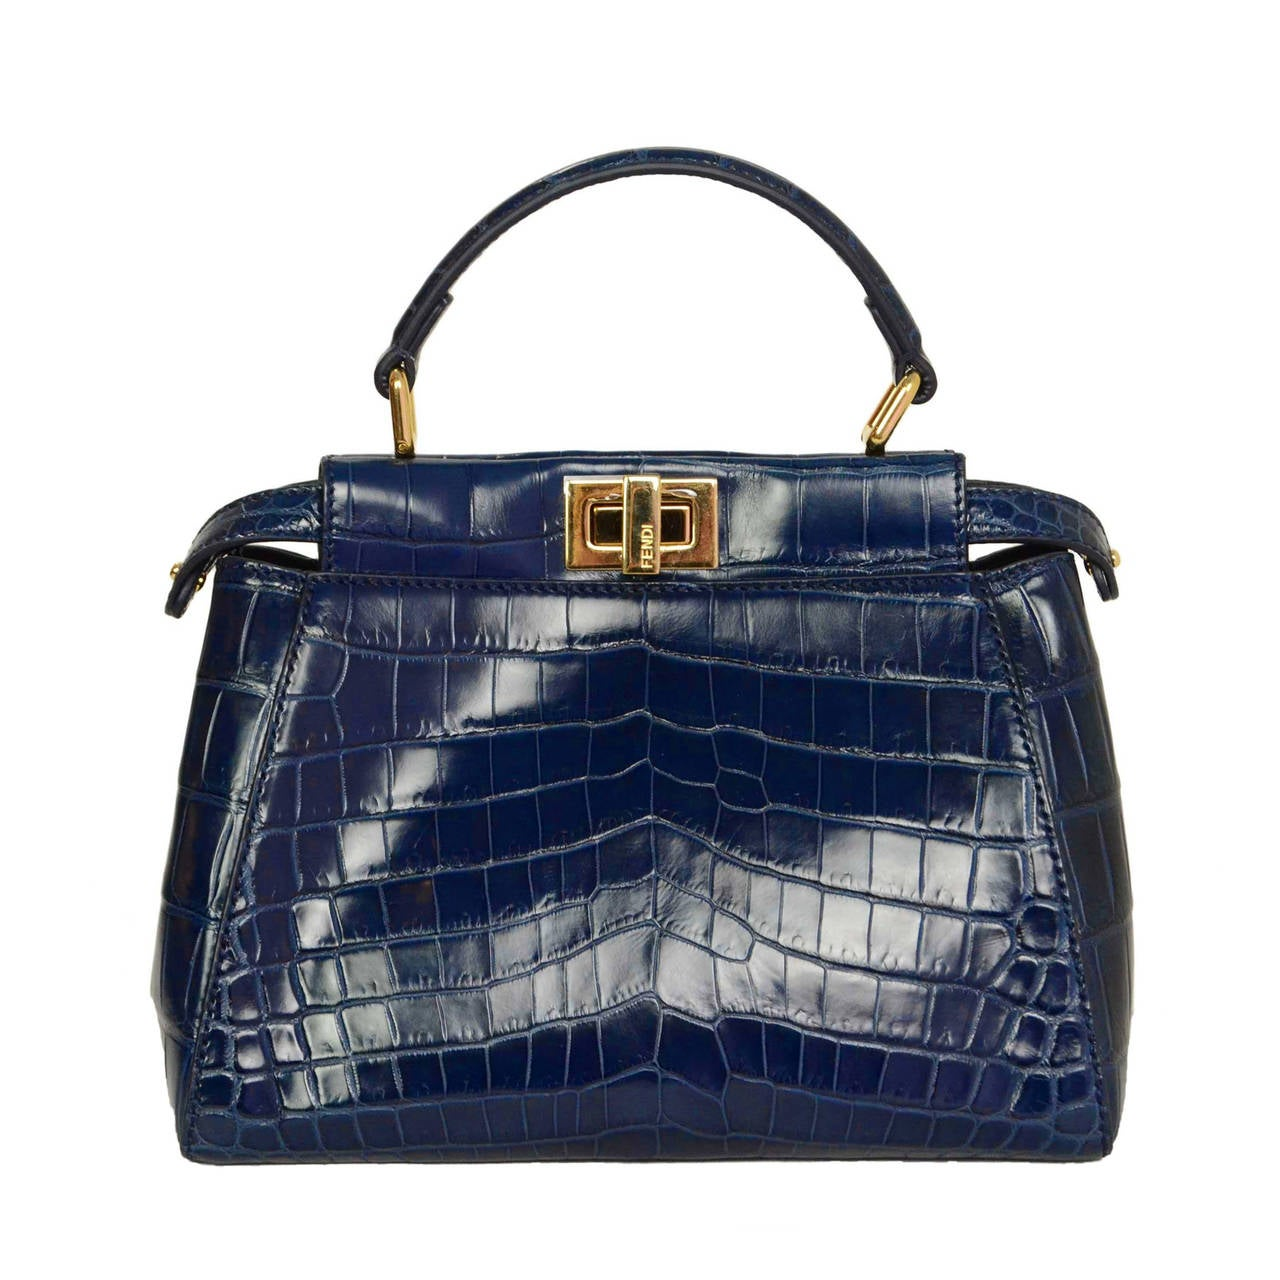 Fendi Peekaboo Crocodile